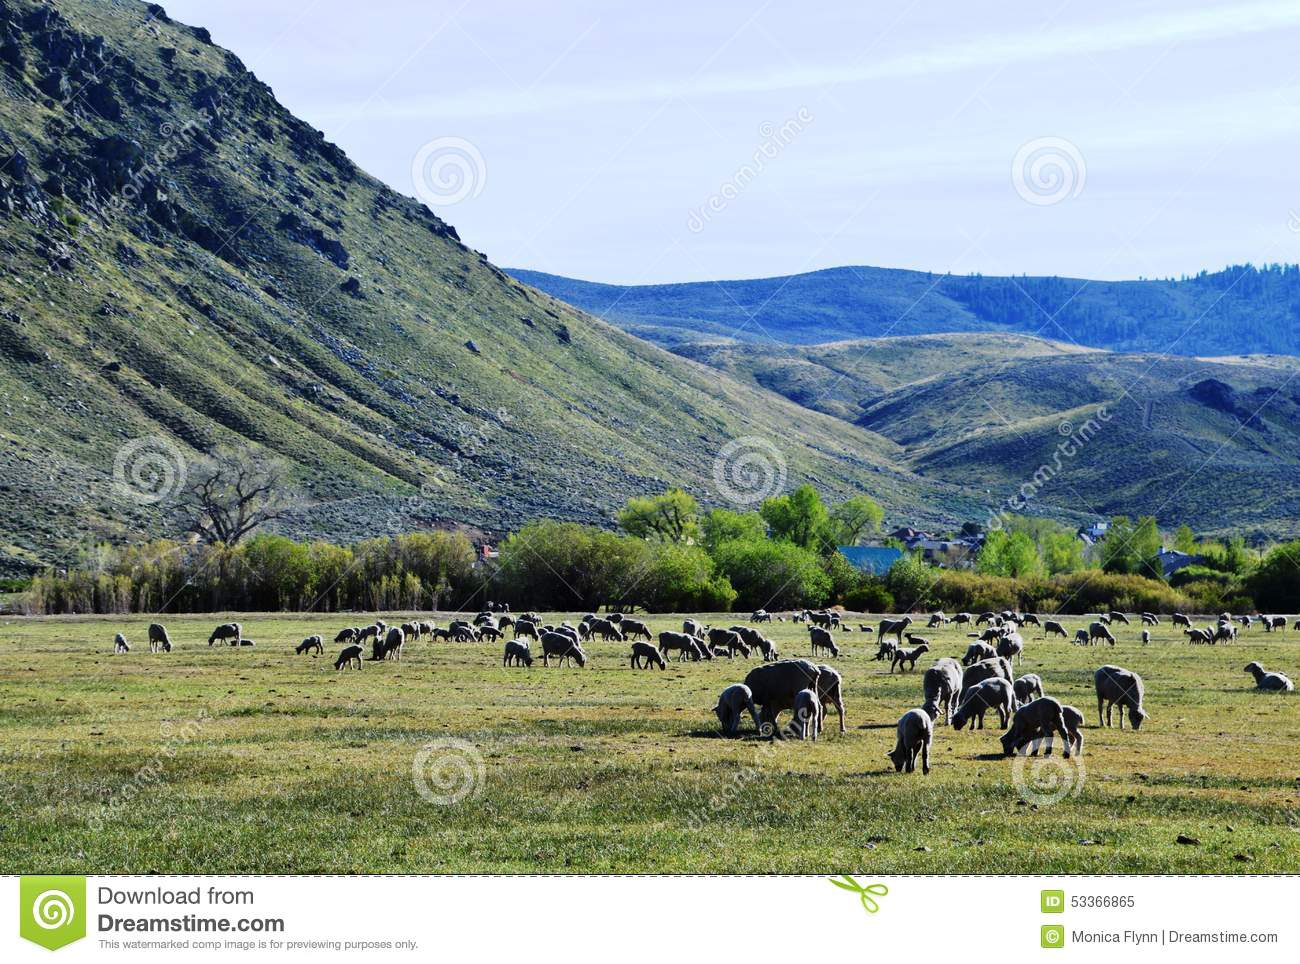 Sheep in Pasture in Carson City, Nevada